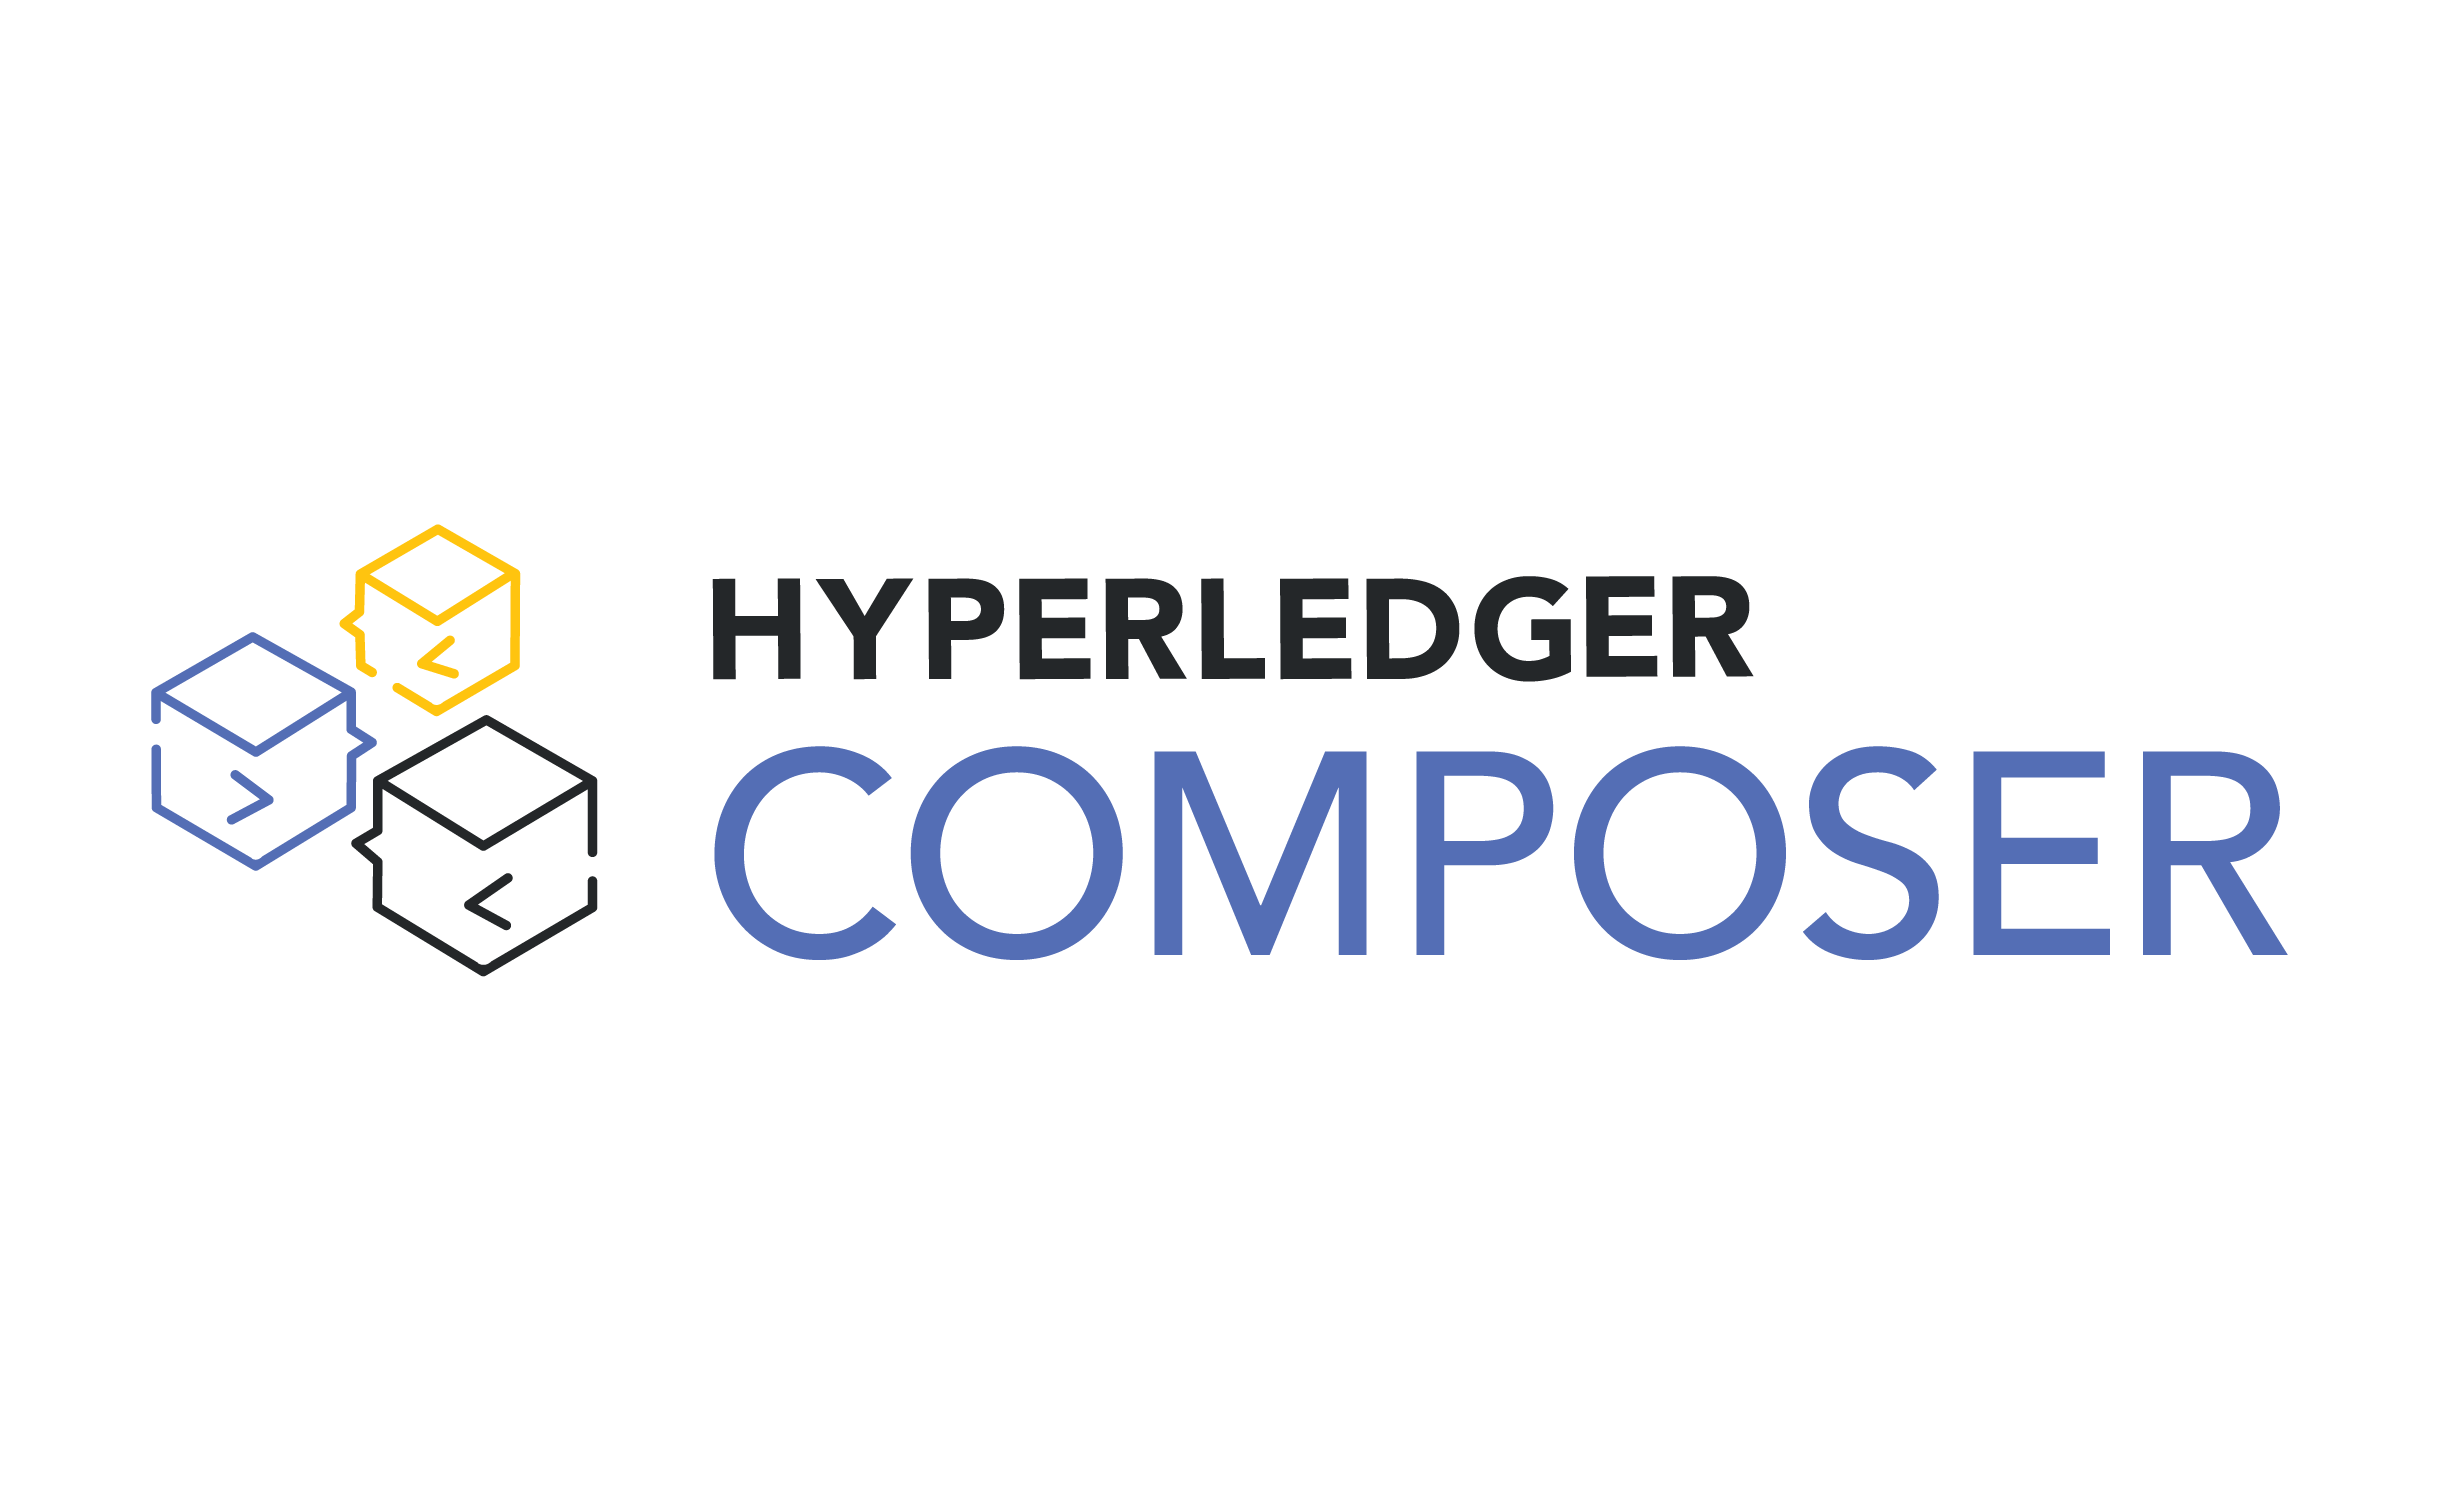 Hyperledger Composer logo